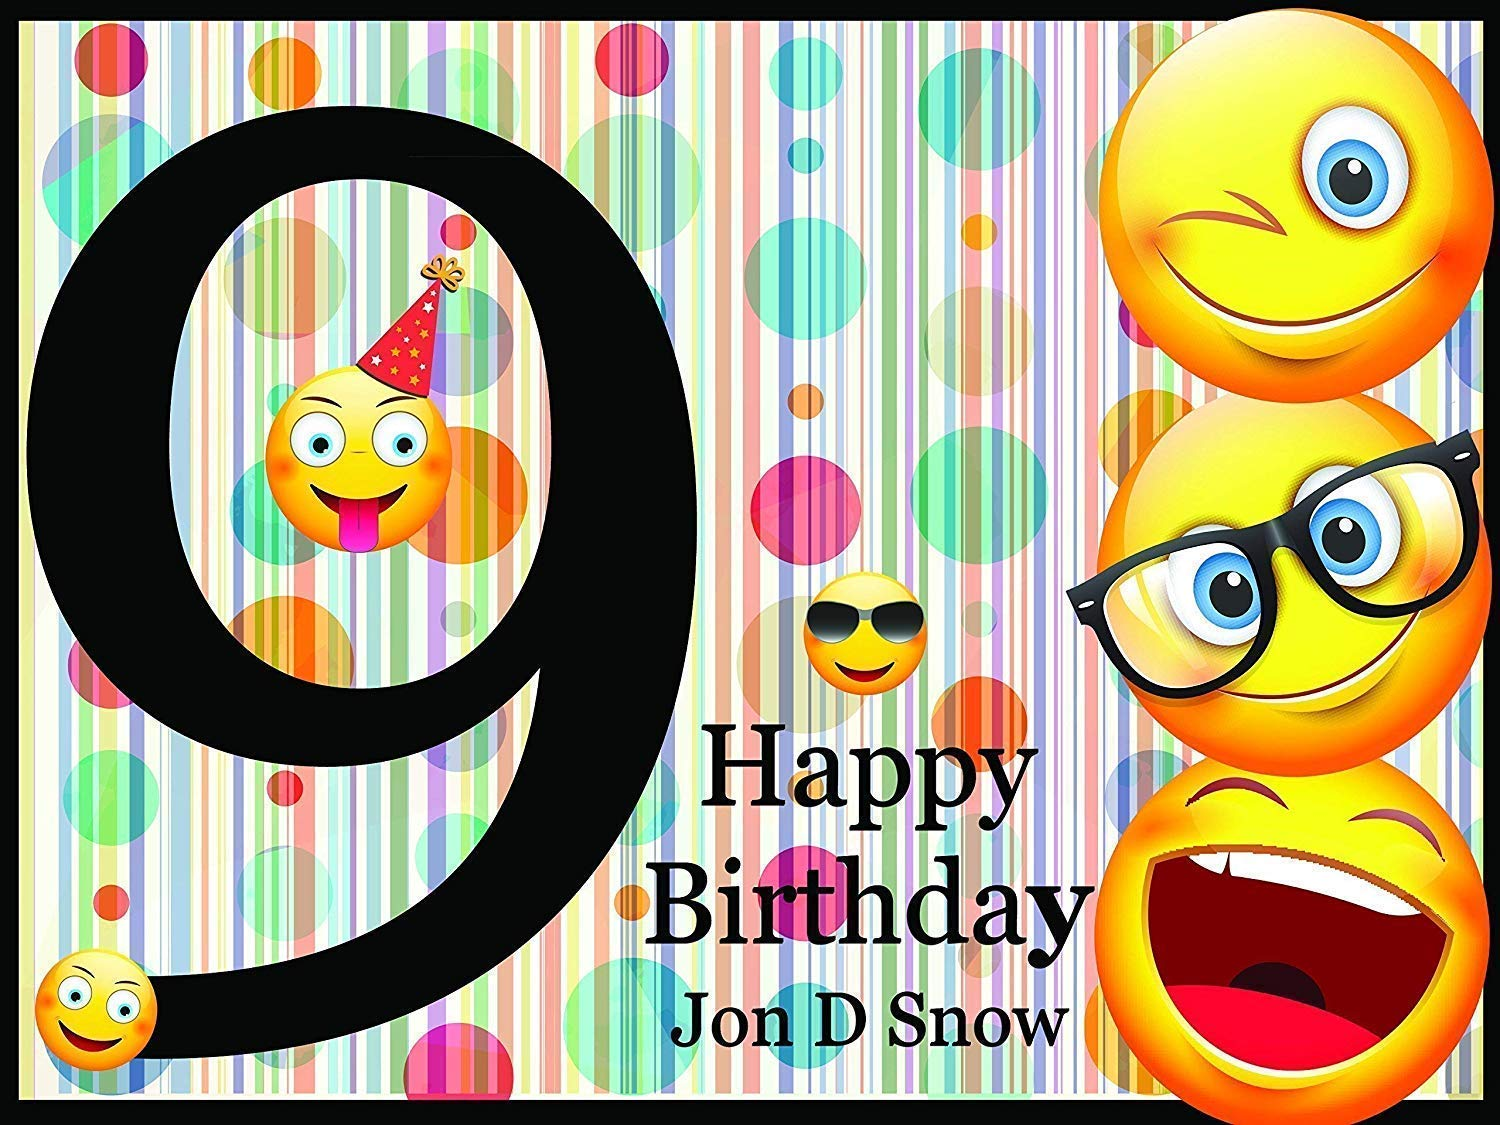 48x36 happy birthday decorations Size 24x36 Emoji Backdrop Emoji party Supplies Wall Decor Handmade Party Supplies 48x24 Wall Poster Personalized 9th Birthday Banner Happy Birthday Banner